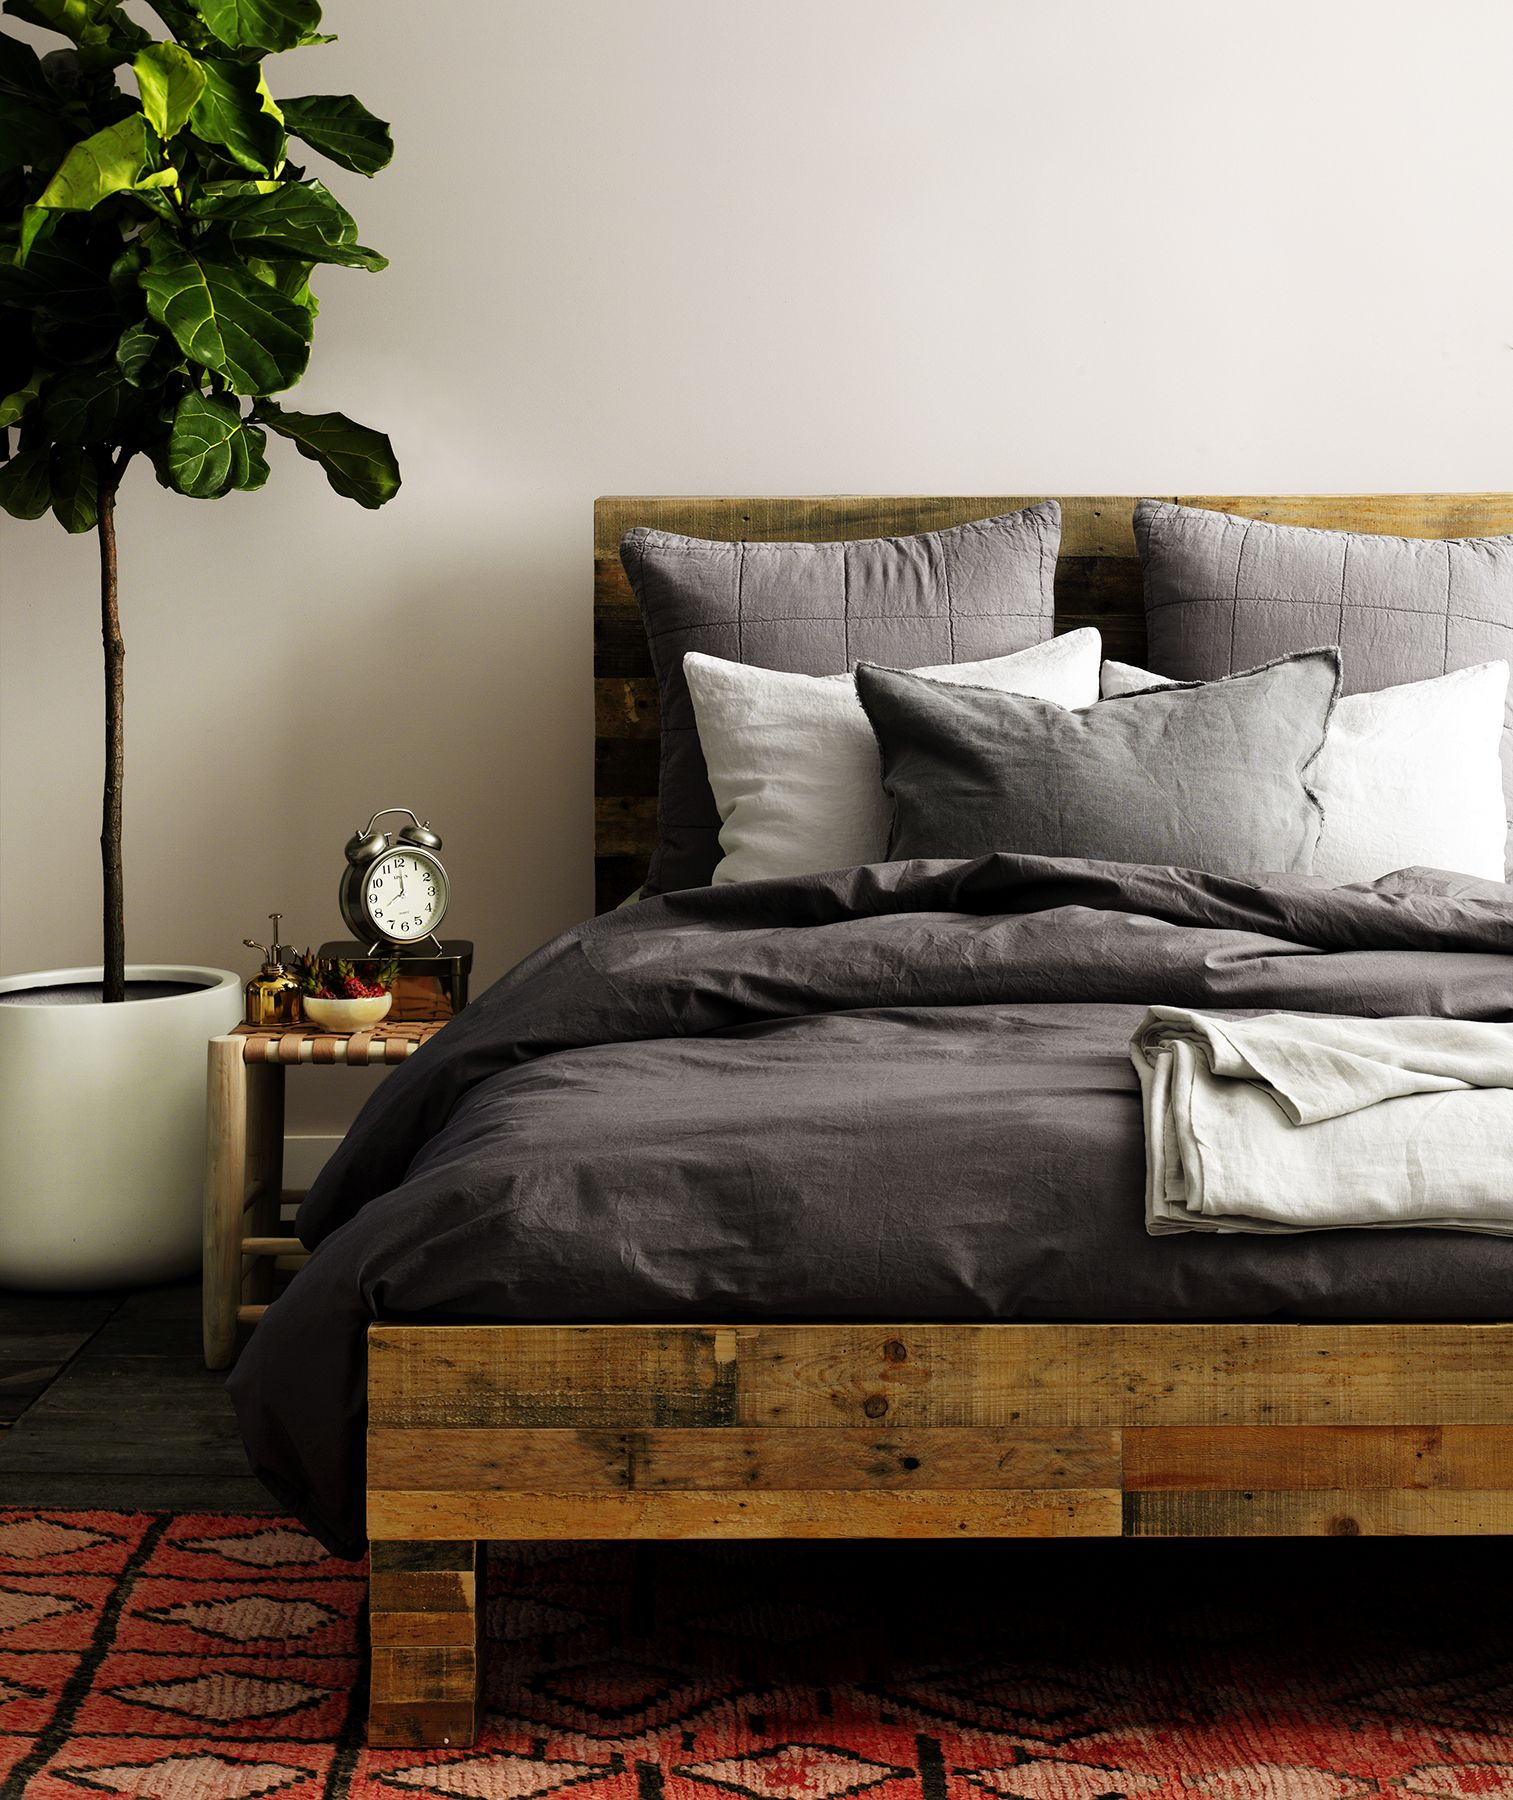 Most Comfortable Bedding Sets.3 Easy Ways To Style The Most Comfortable Bed Better Your